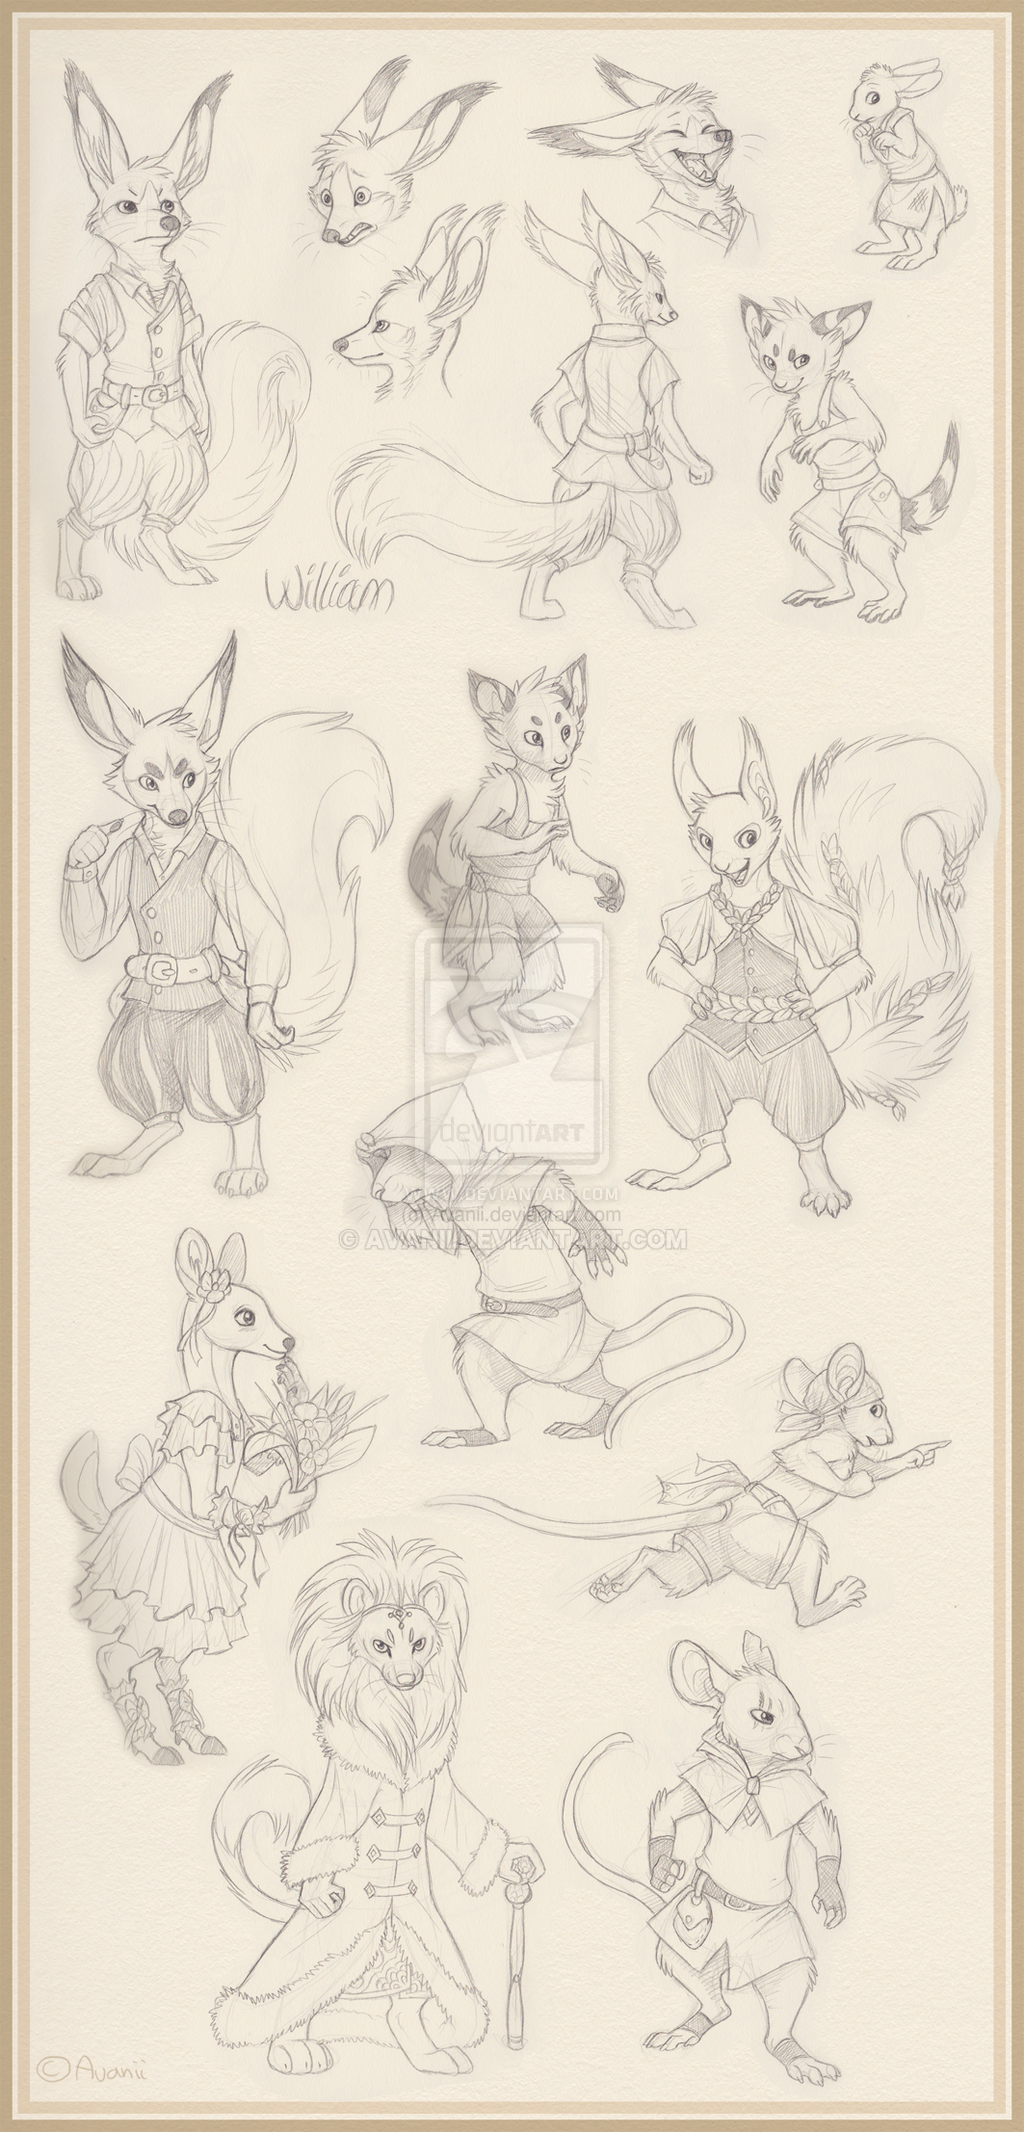 Sketches: Anthros by Avanii